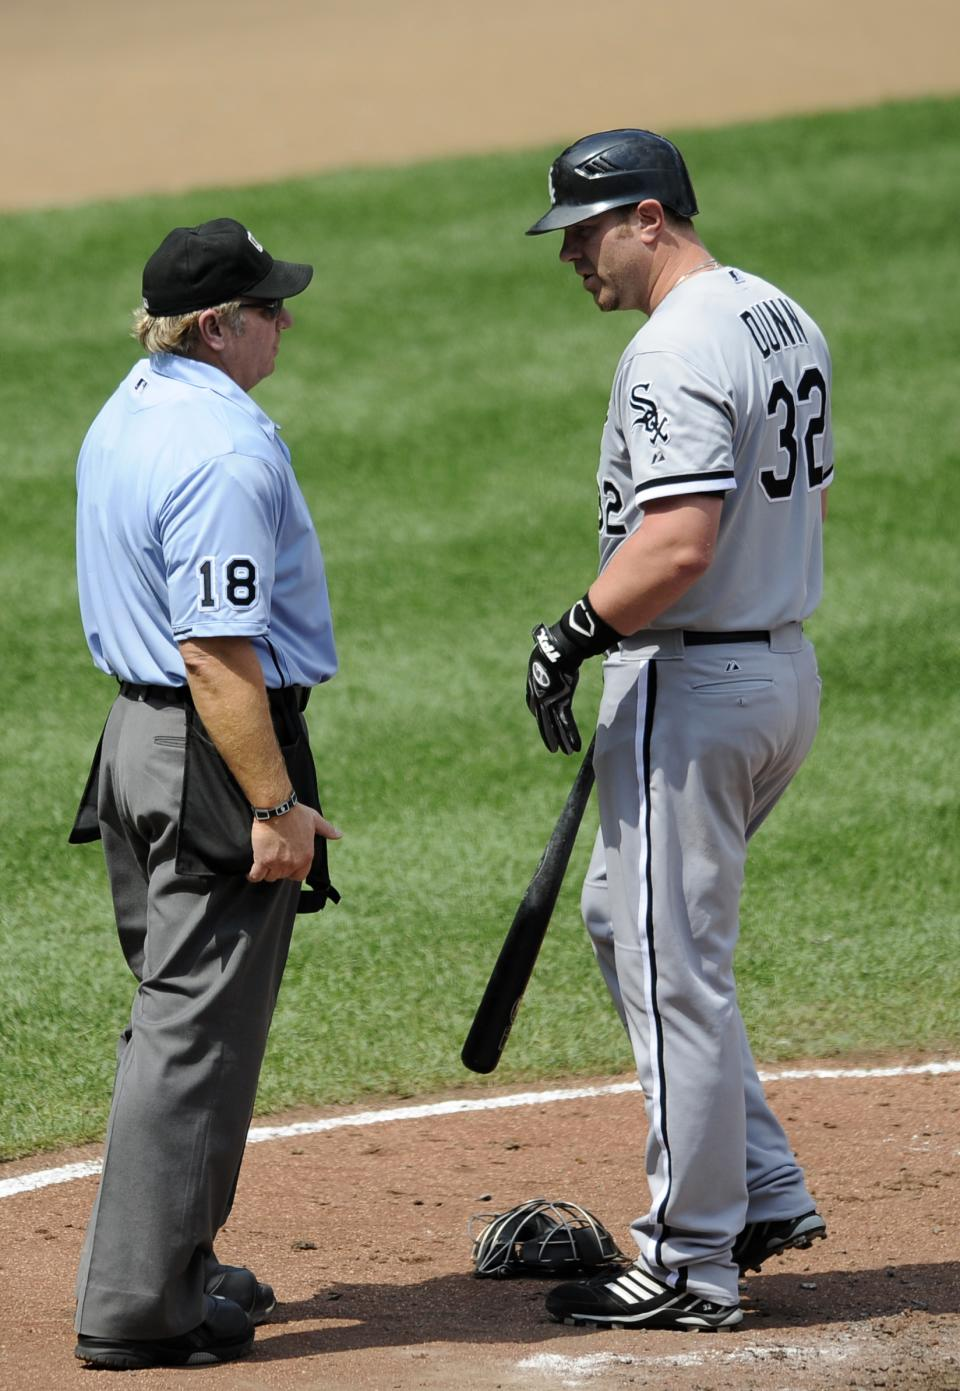 Chicago White Sox designated hitter Adam Dunn (32) looks at home plate umpire Brian Runge (18) after he struck out during the third inning of a baseball game against the Baltimore Orioles, Thursday, Aug. 30, 2012, in Baltimore. (AP Photo/Nick Wass)